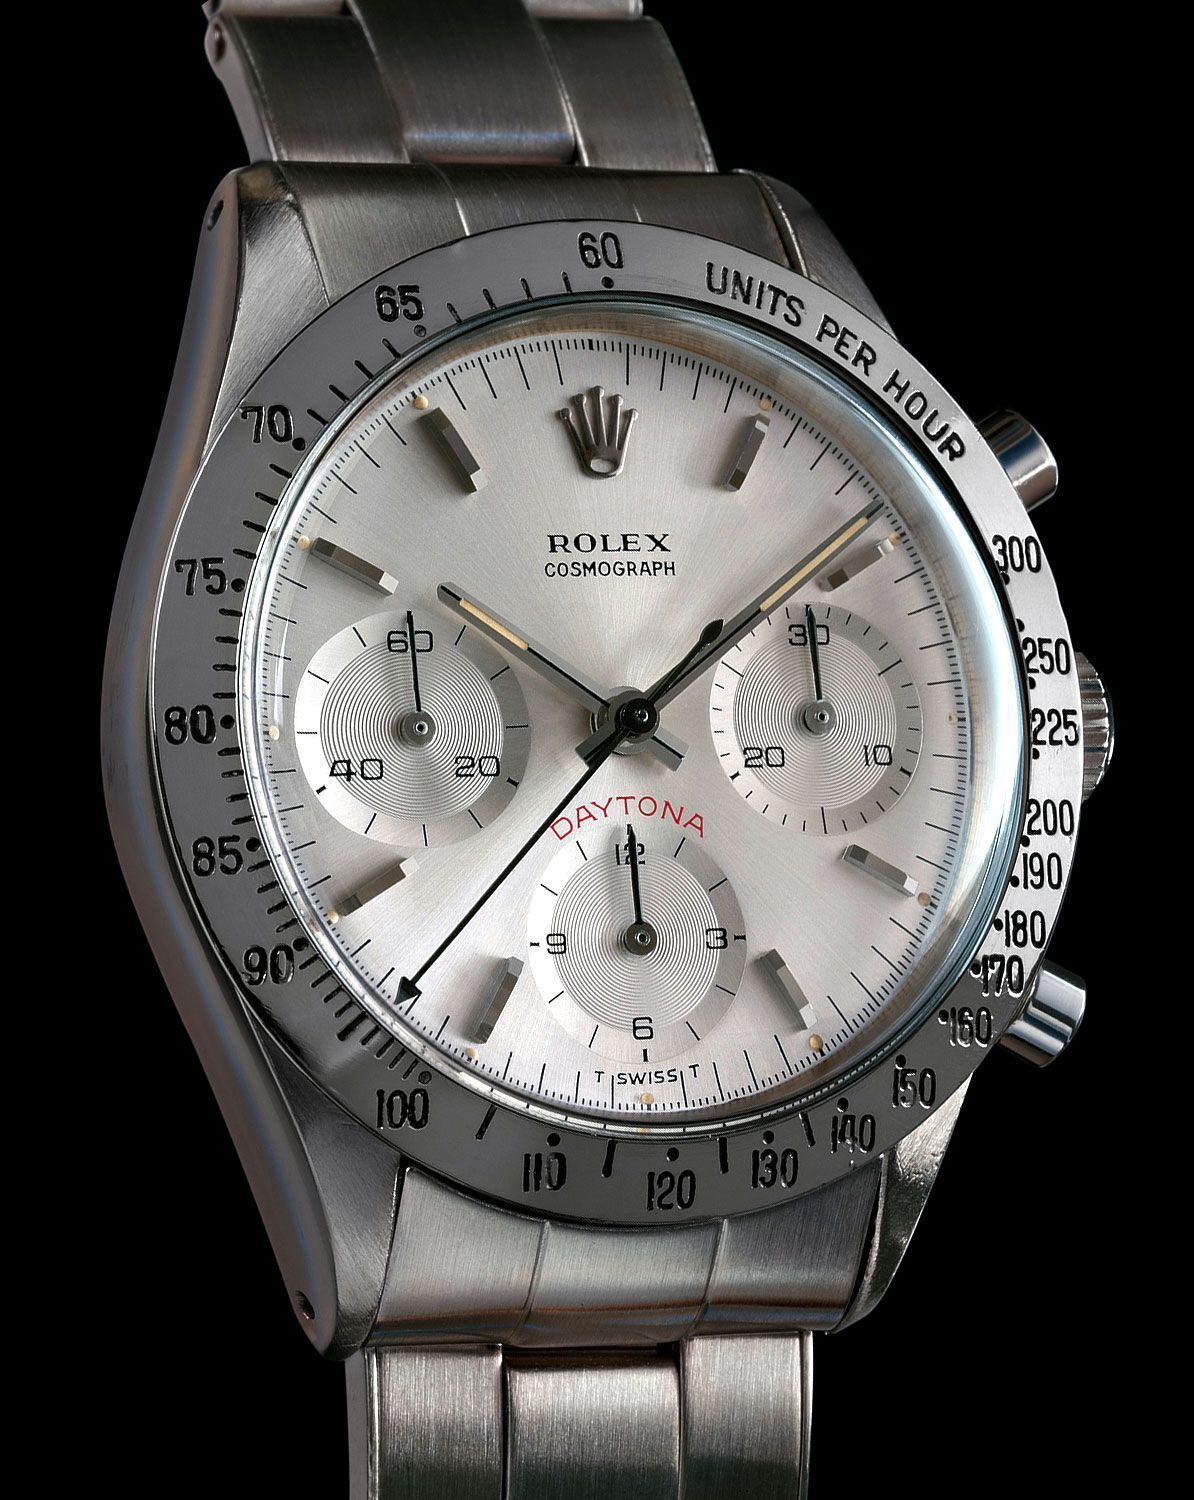 Welcome to RolexMagazine.com...Home of Jake's Rolex World Magazine..Optimized for iPad and iPhone: The Complete History Of The Rolex Daytona Cosmograph #rolexdaytona Welcome to RolexMagazine.com...Home of Jake's Rolex World Magazine..Optimized for iPad and iPhone: The Complete History Of The Rolex Daytona Cosmograph #rolexdaytona Welcome to RolexMagazine.com...Home of Jake's Rolex World Magazine..Optimized for iPad and iPhone: The Complete History Of The Rolex Daytona Cosmograph #rolexdaytona We #rolexdaytona